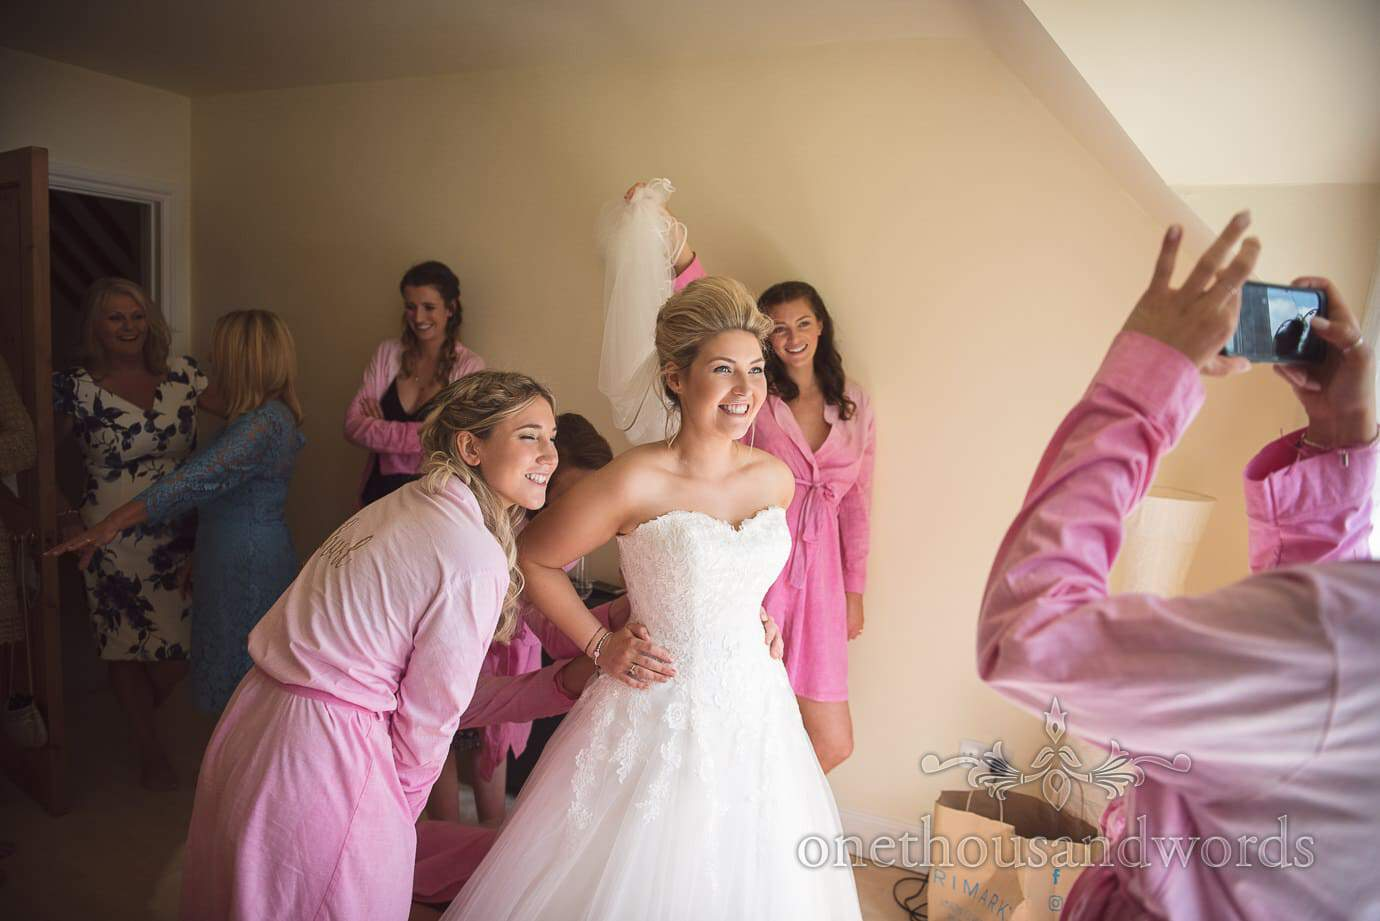 Bridesmaids in pink dressing gowns help bride into wedding dress and take photograph